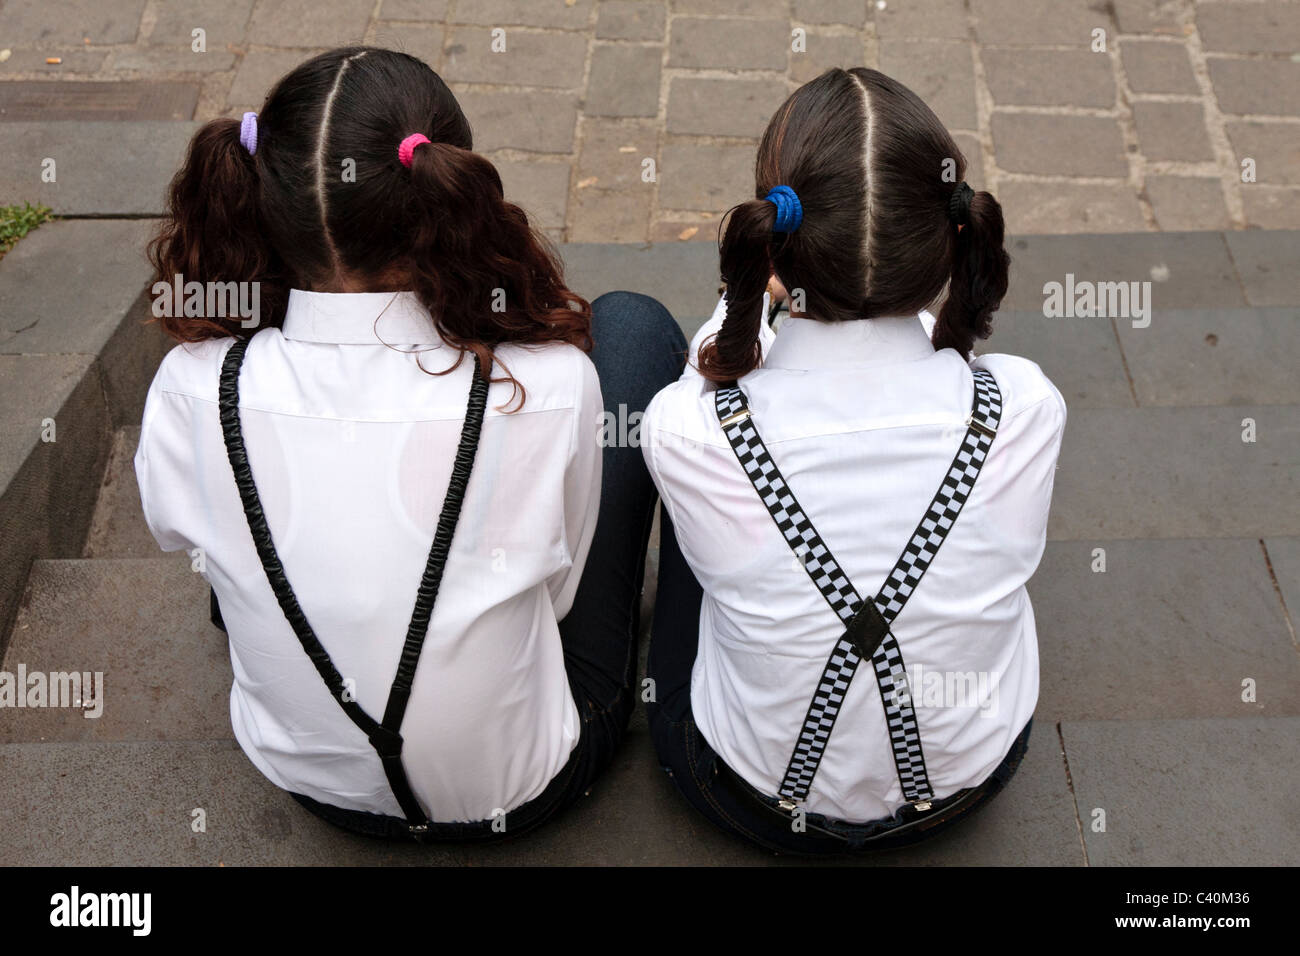 two-young-girls-in-costume-at-the-santa-